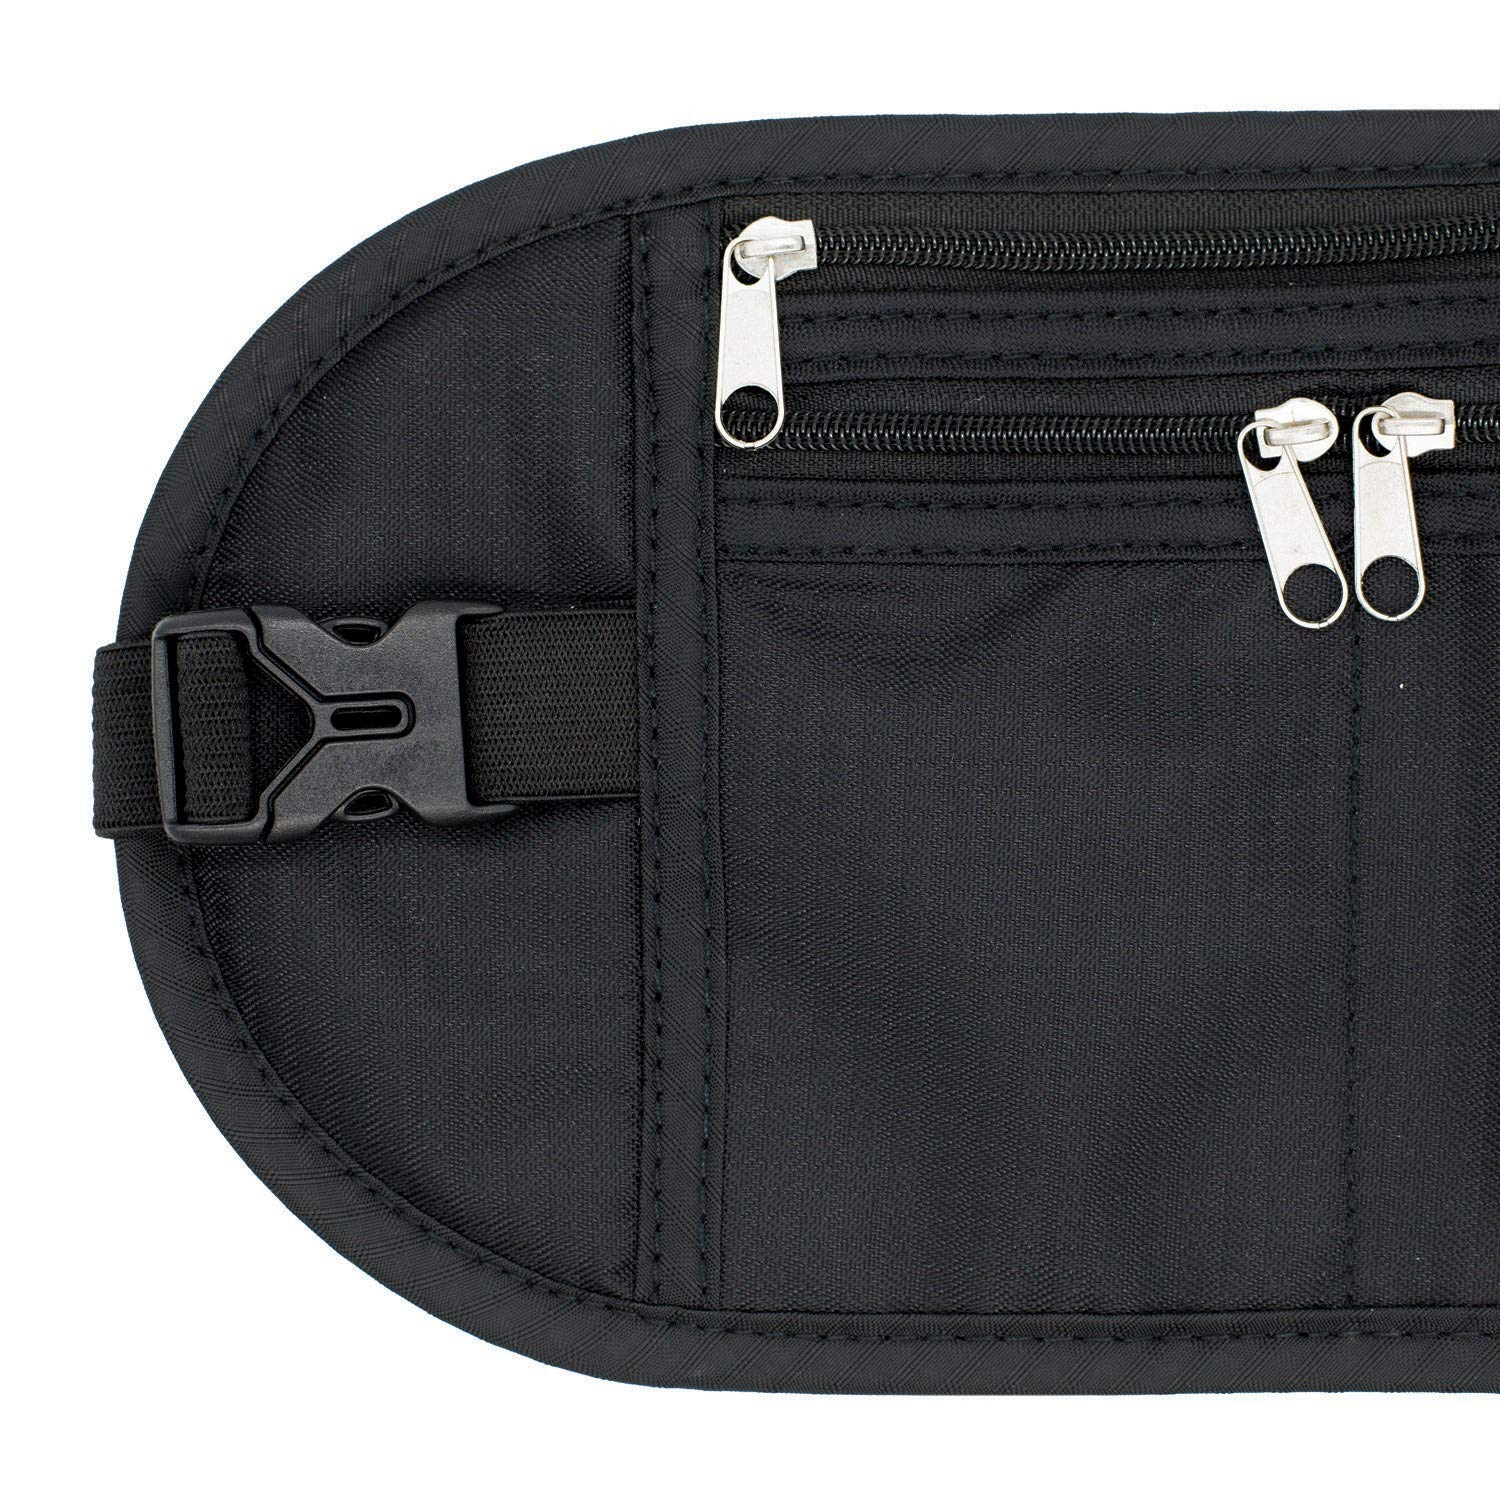 4d38550e61c WILLWELL SPORT Money Belt Hidden Security Pouch Waterproof & Lightweight  Bumbag – for Adults & Kids – RFID Fabric – for Your Conceal Valuable ...